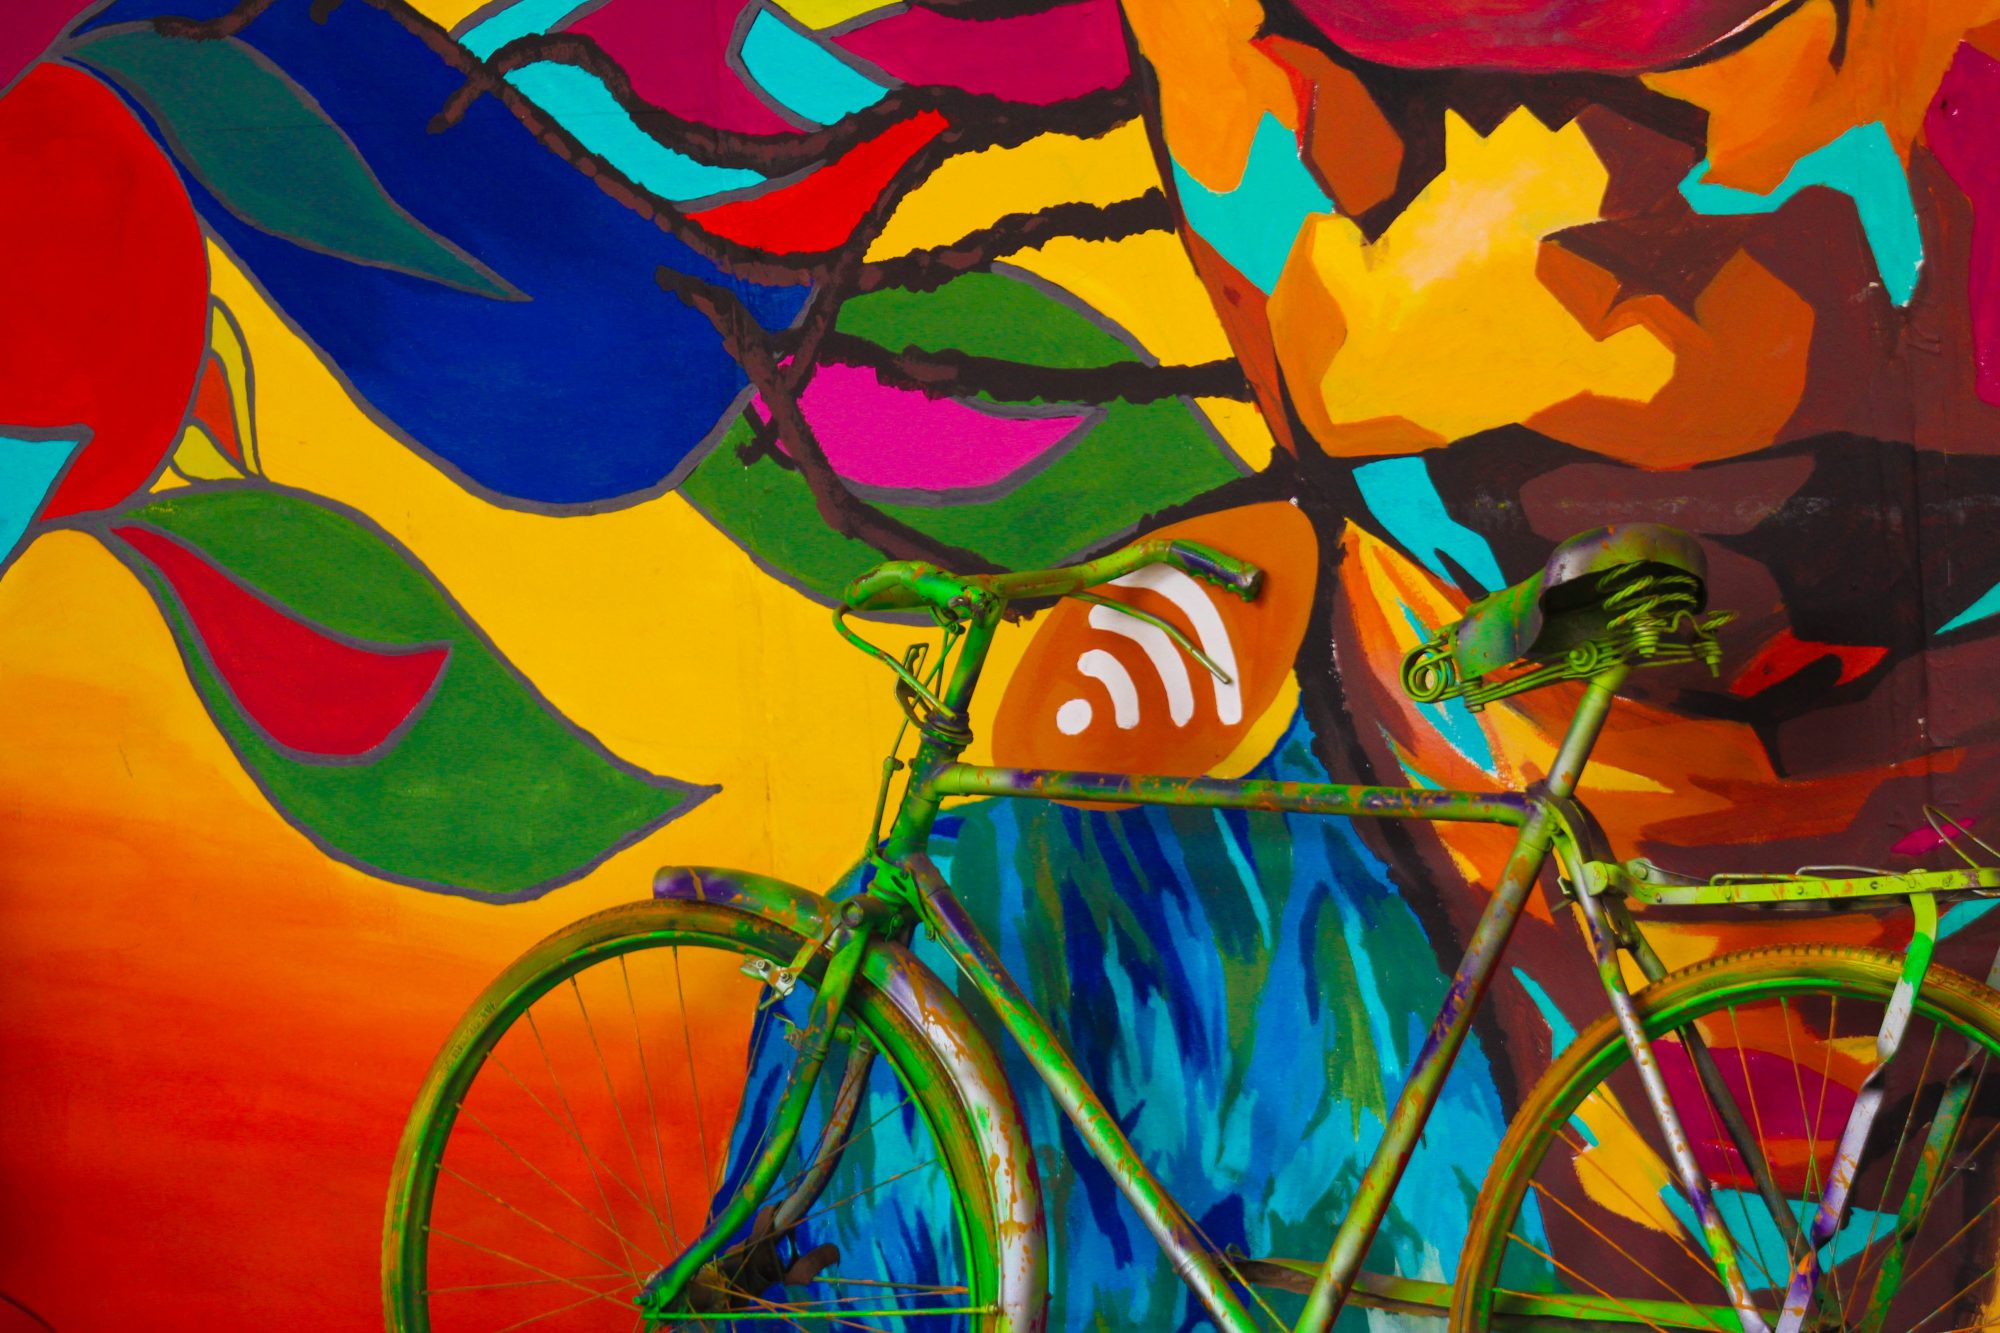 colorful painted bike